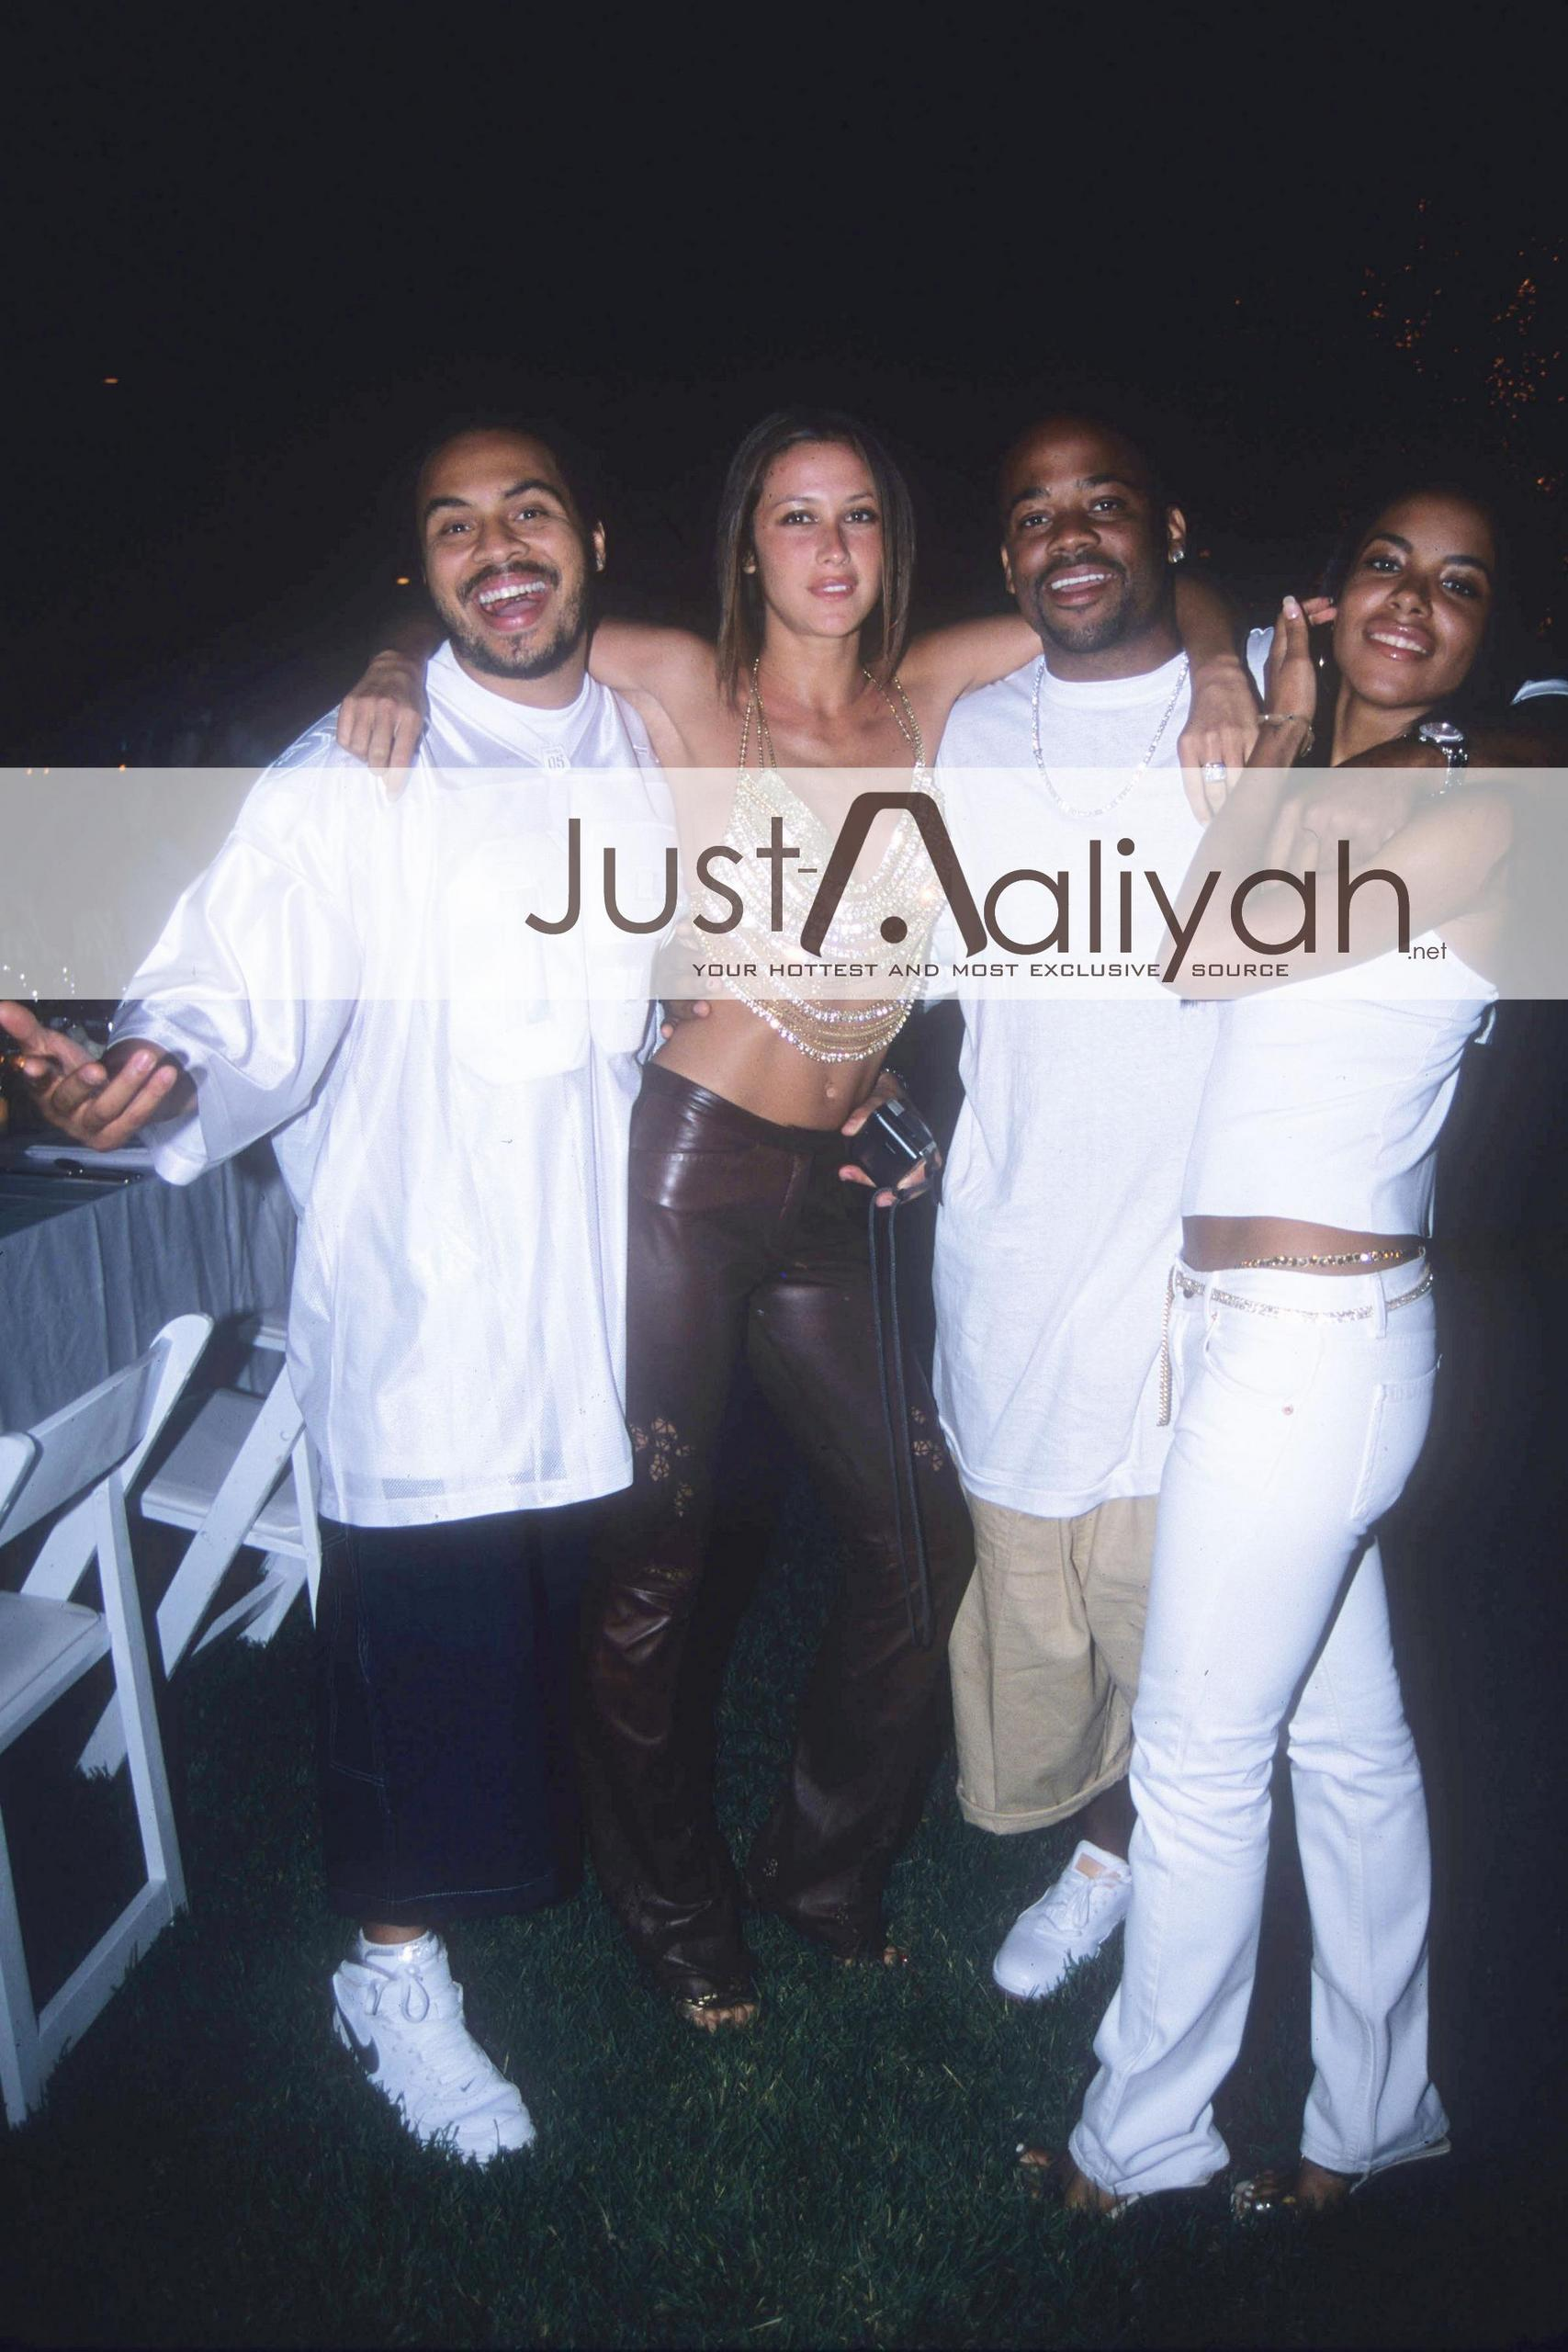 Just-Aaliyah Exclusive...